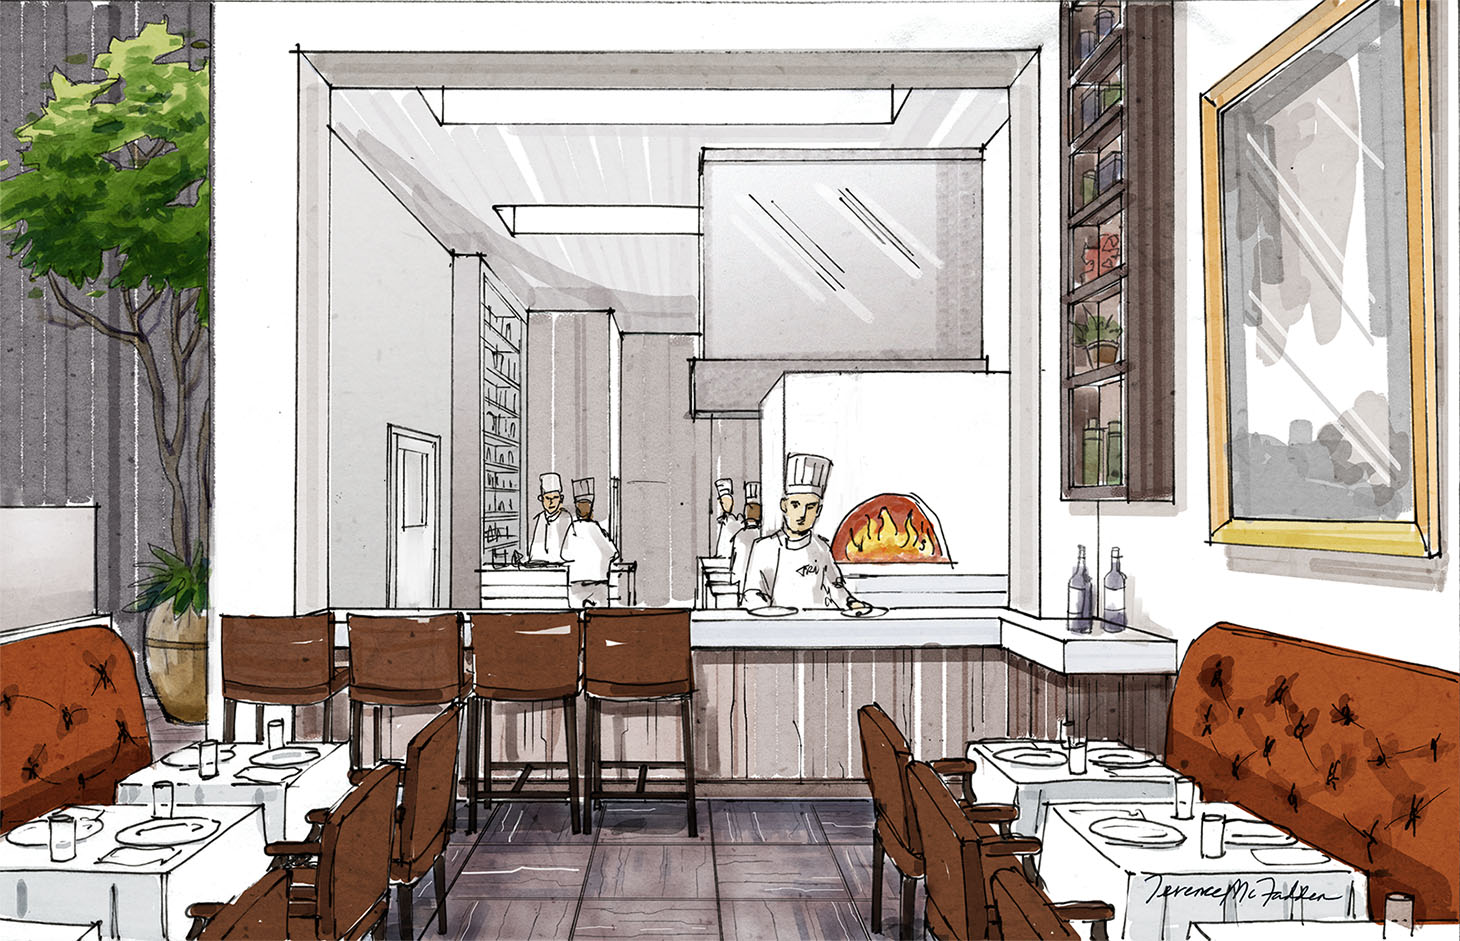 Rendering. Client: The Baylon Hospitality Group. Restaurant Interior. hand-drawn marker art